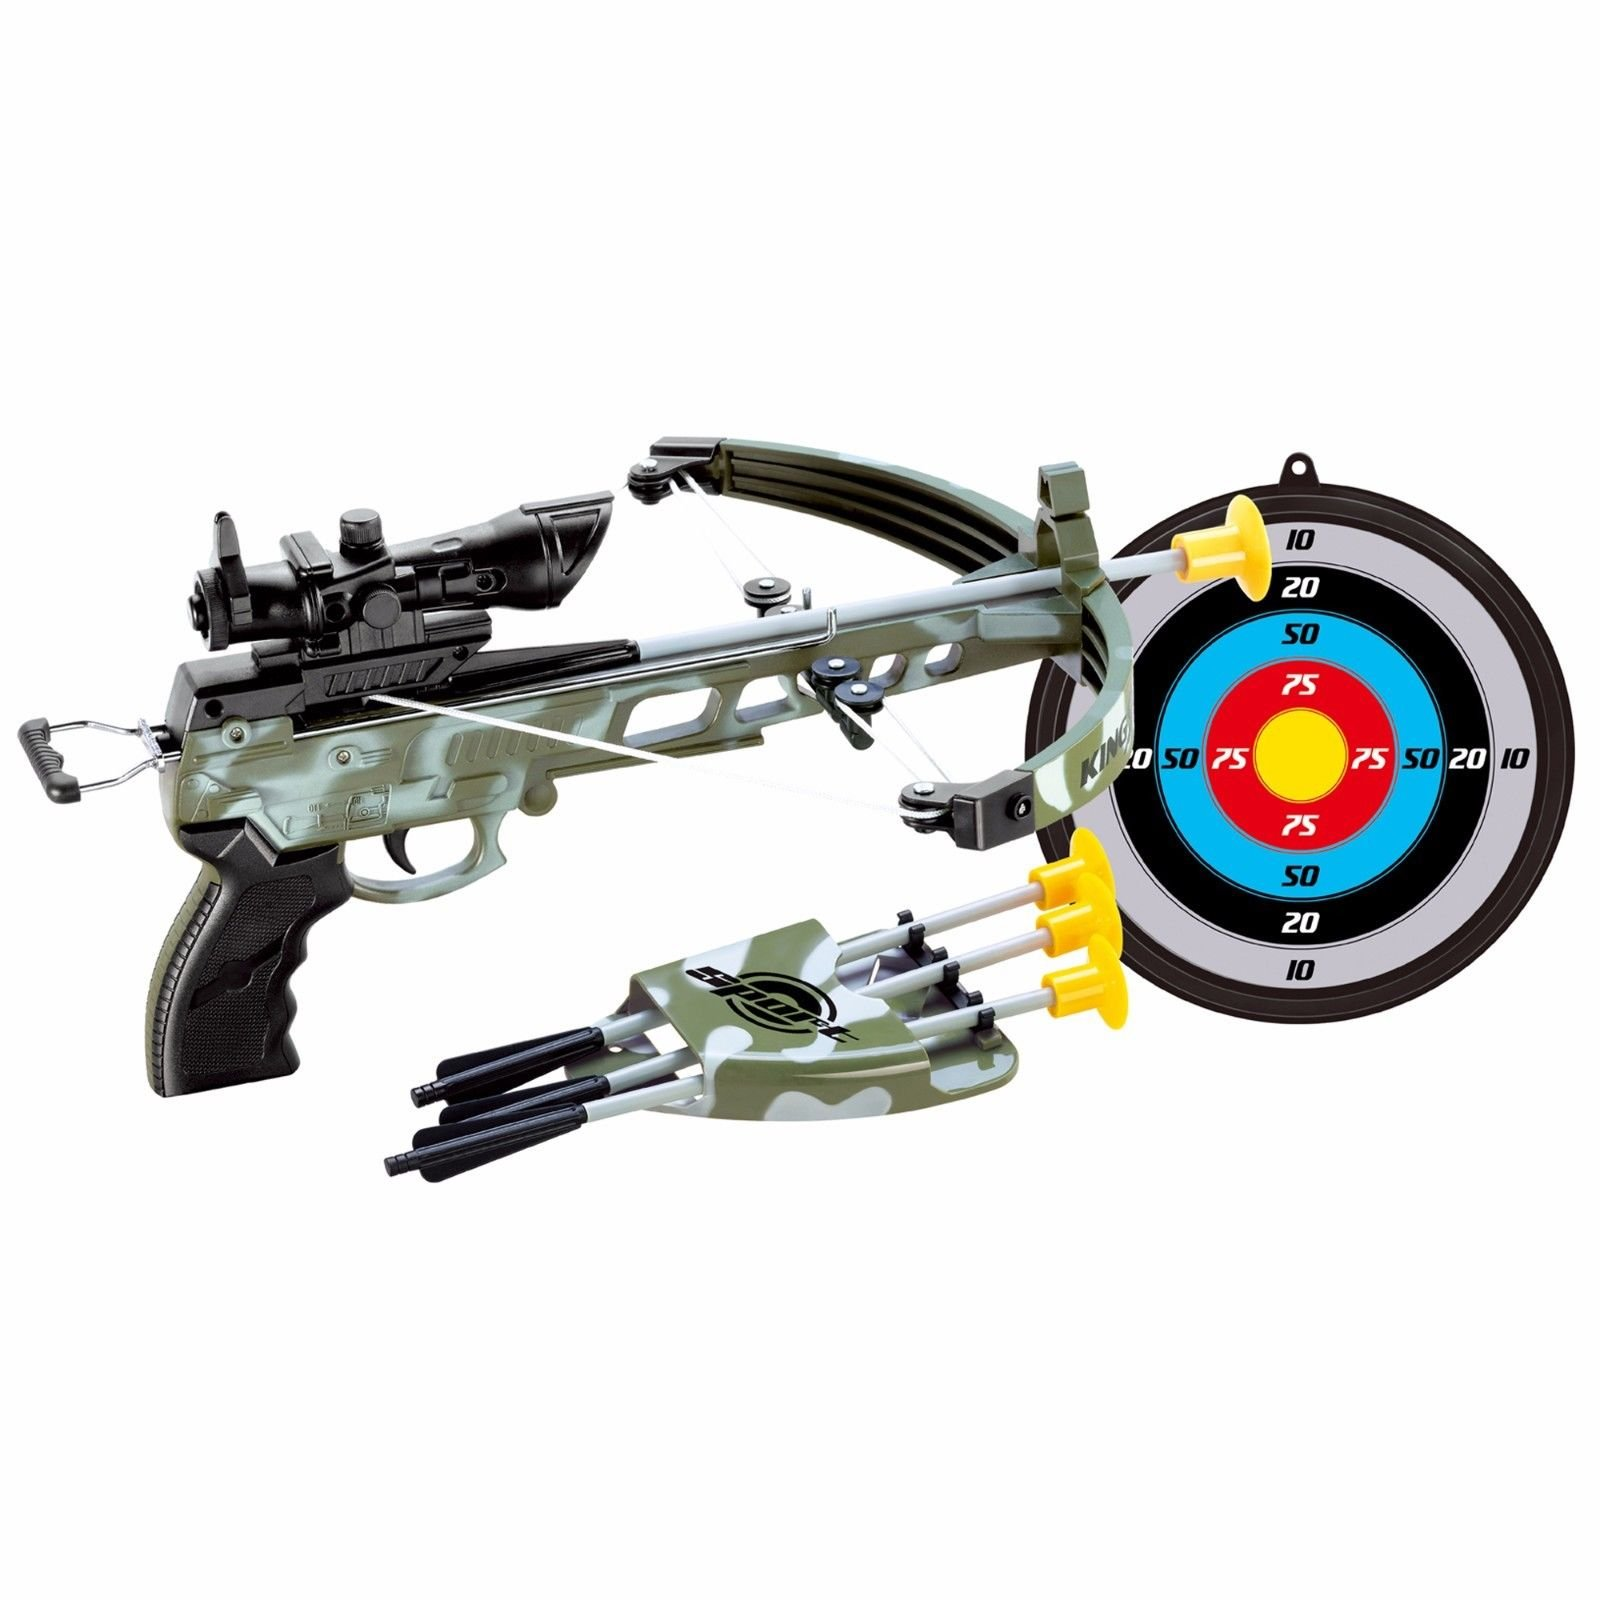 Military Toy Crossbow Set w/Target